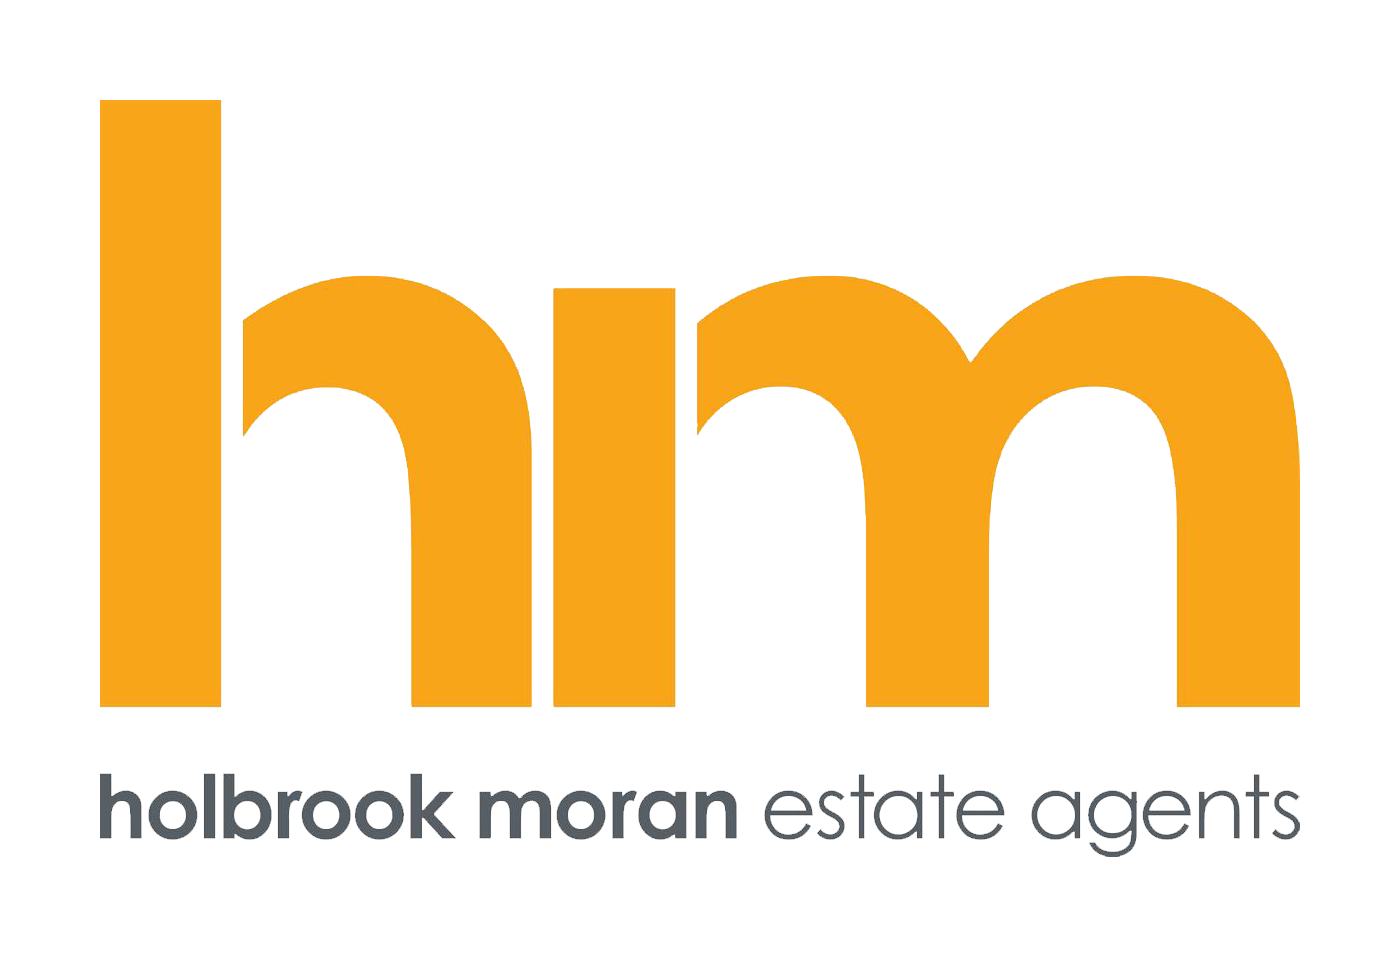 Holbrook Moran Redfield and Fishponds Estate Agent | Residential Sales and Lettings